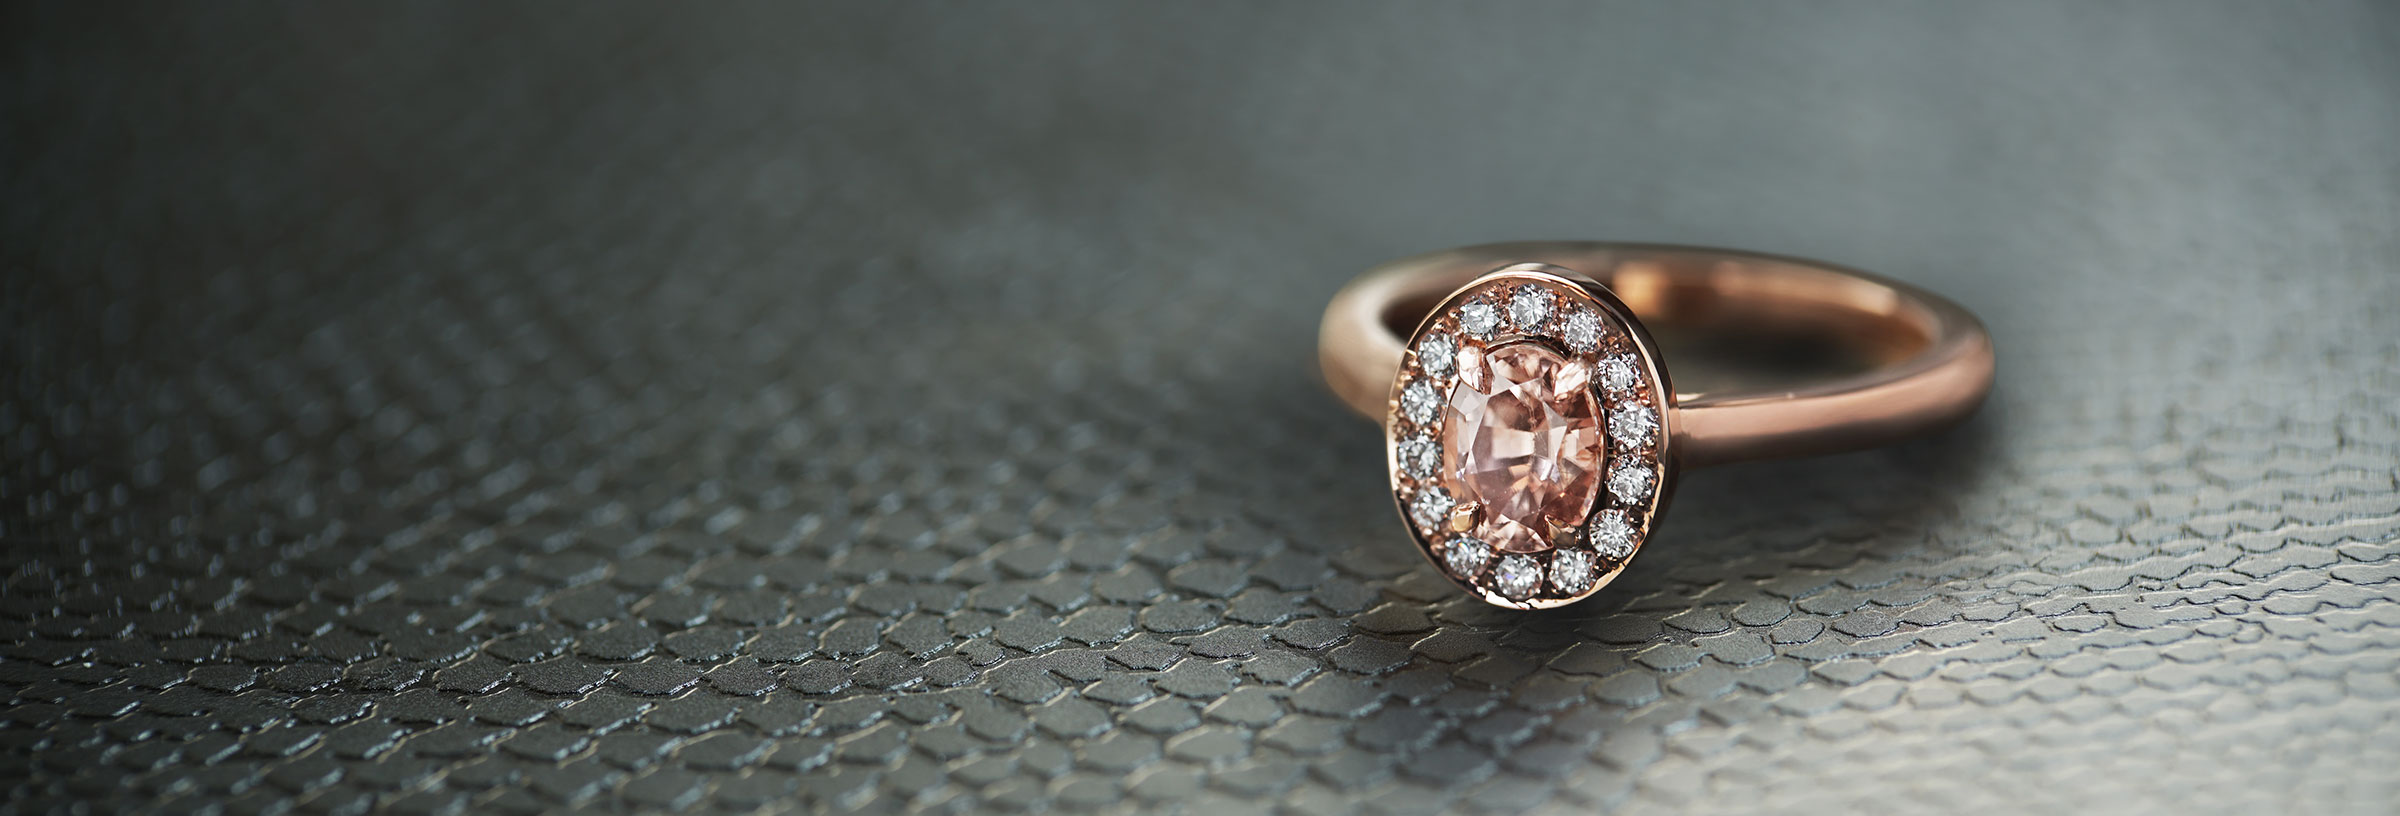 diamond-halo-peach-tourmaline-engagement-ring-in-rose-gold